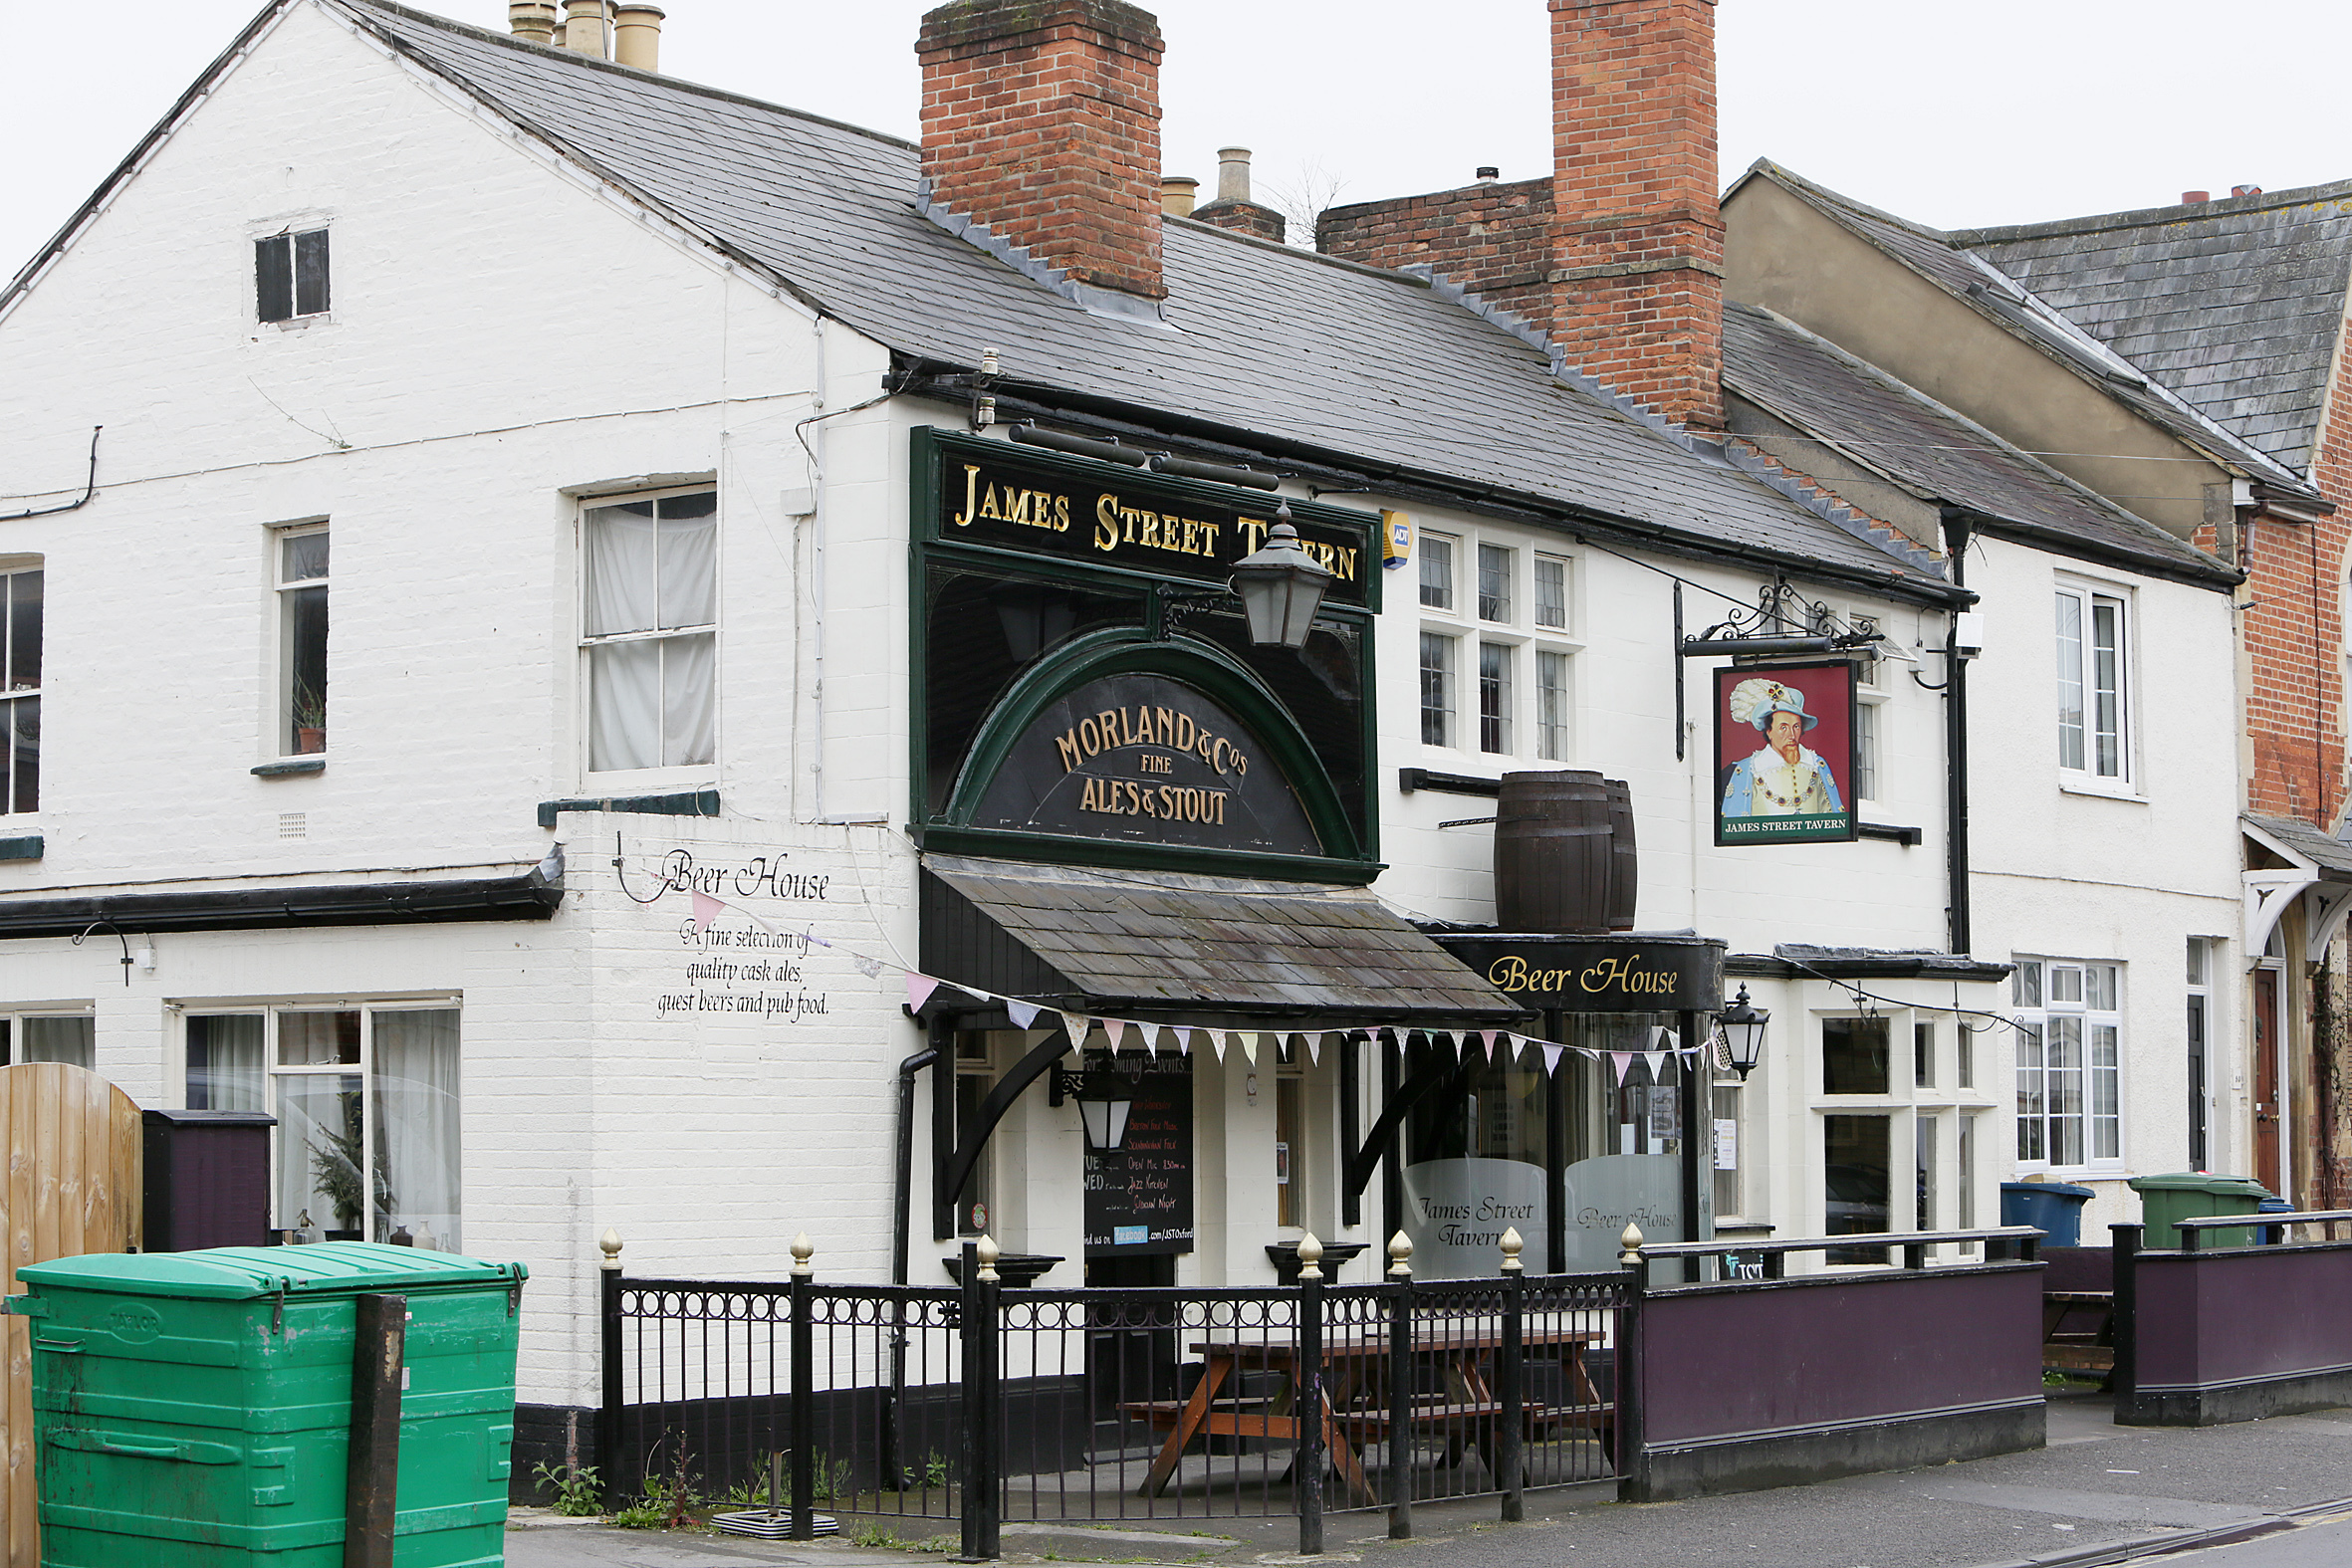 James Street Tavern Picture: Damian Halliwell